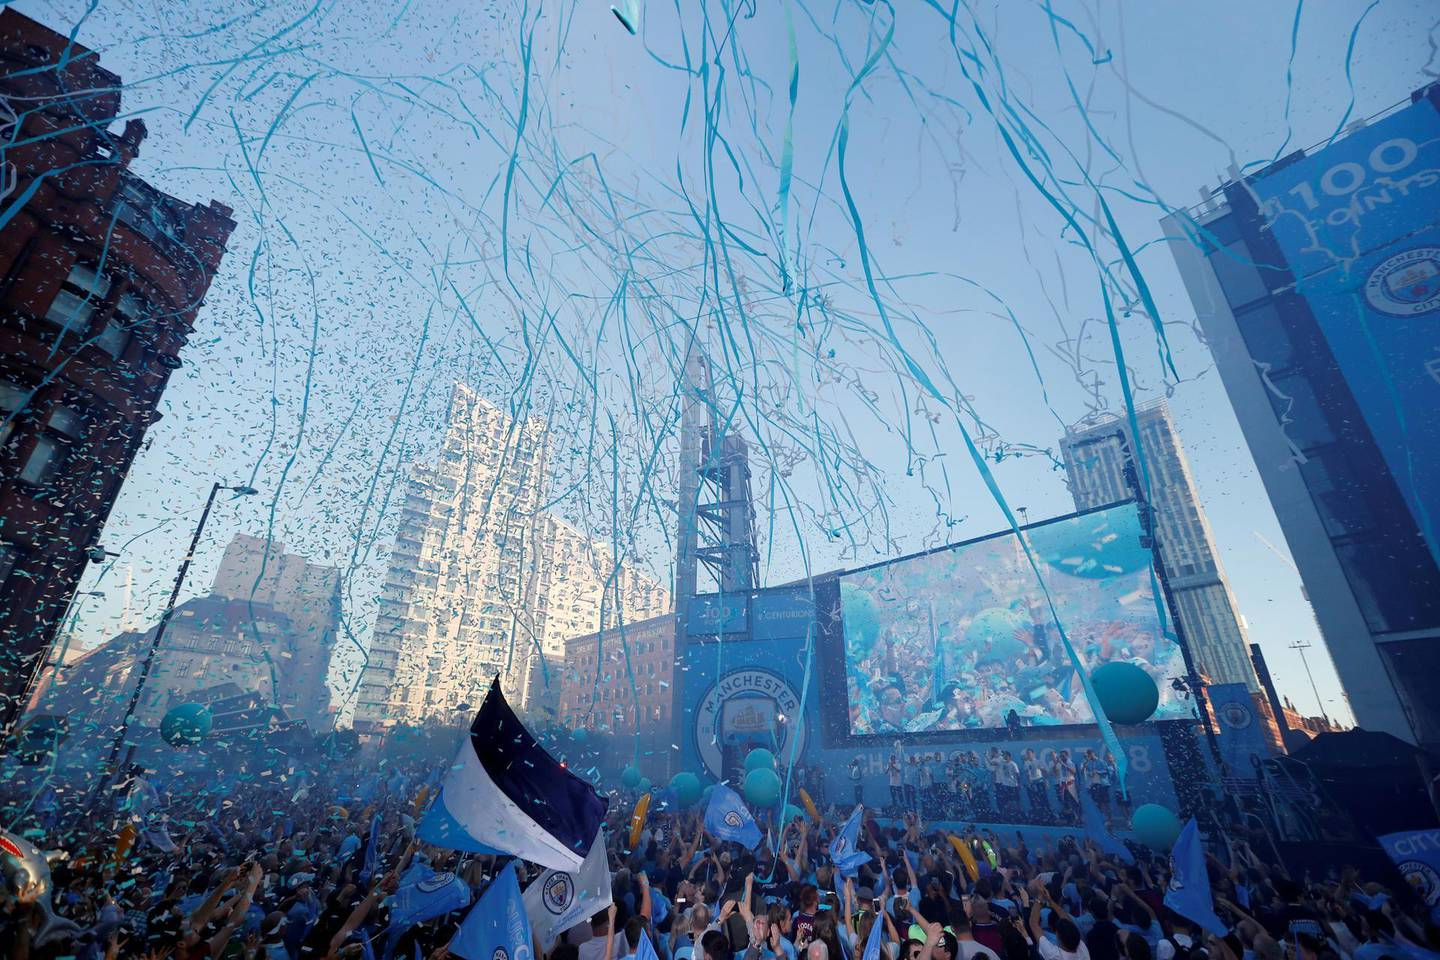 FILE PHOTO: ON THIS DAY -- May 14   May 14, 2018     SOCCER - Manchester City fans and players celebrate during the parade after the club clinched the Premier League title with a record haul of 100 points.     No team had ever accumulated 100 points in a season and Pep Guardiola's City nearly lost their chance in the final game against Southampton a day earlier before Gabriel Jesus scored an stoppage-time winner in a 1-0 win.     The title was City's second of the season after they won the League Cup in February. Action Images via REUTERS/Andrew Boyers/File photo